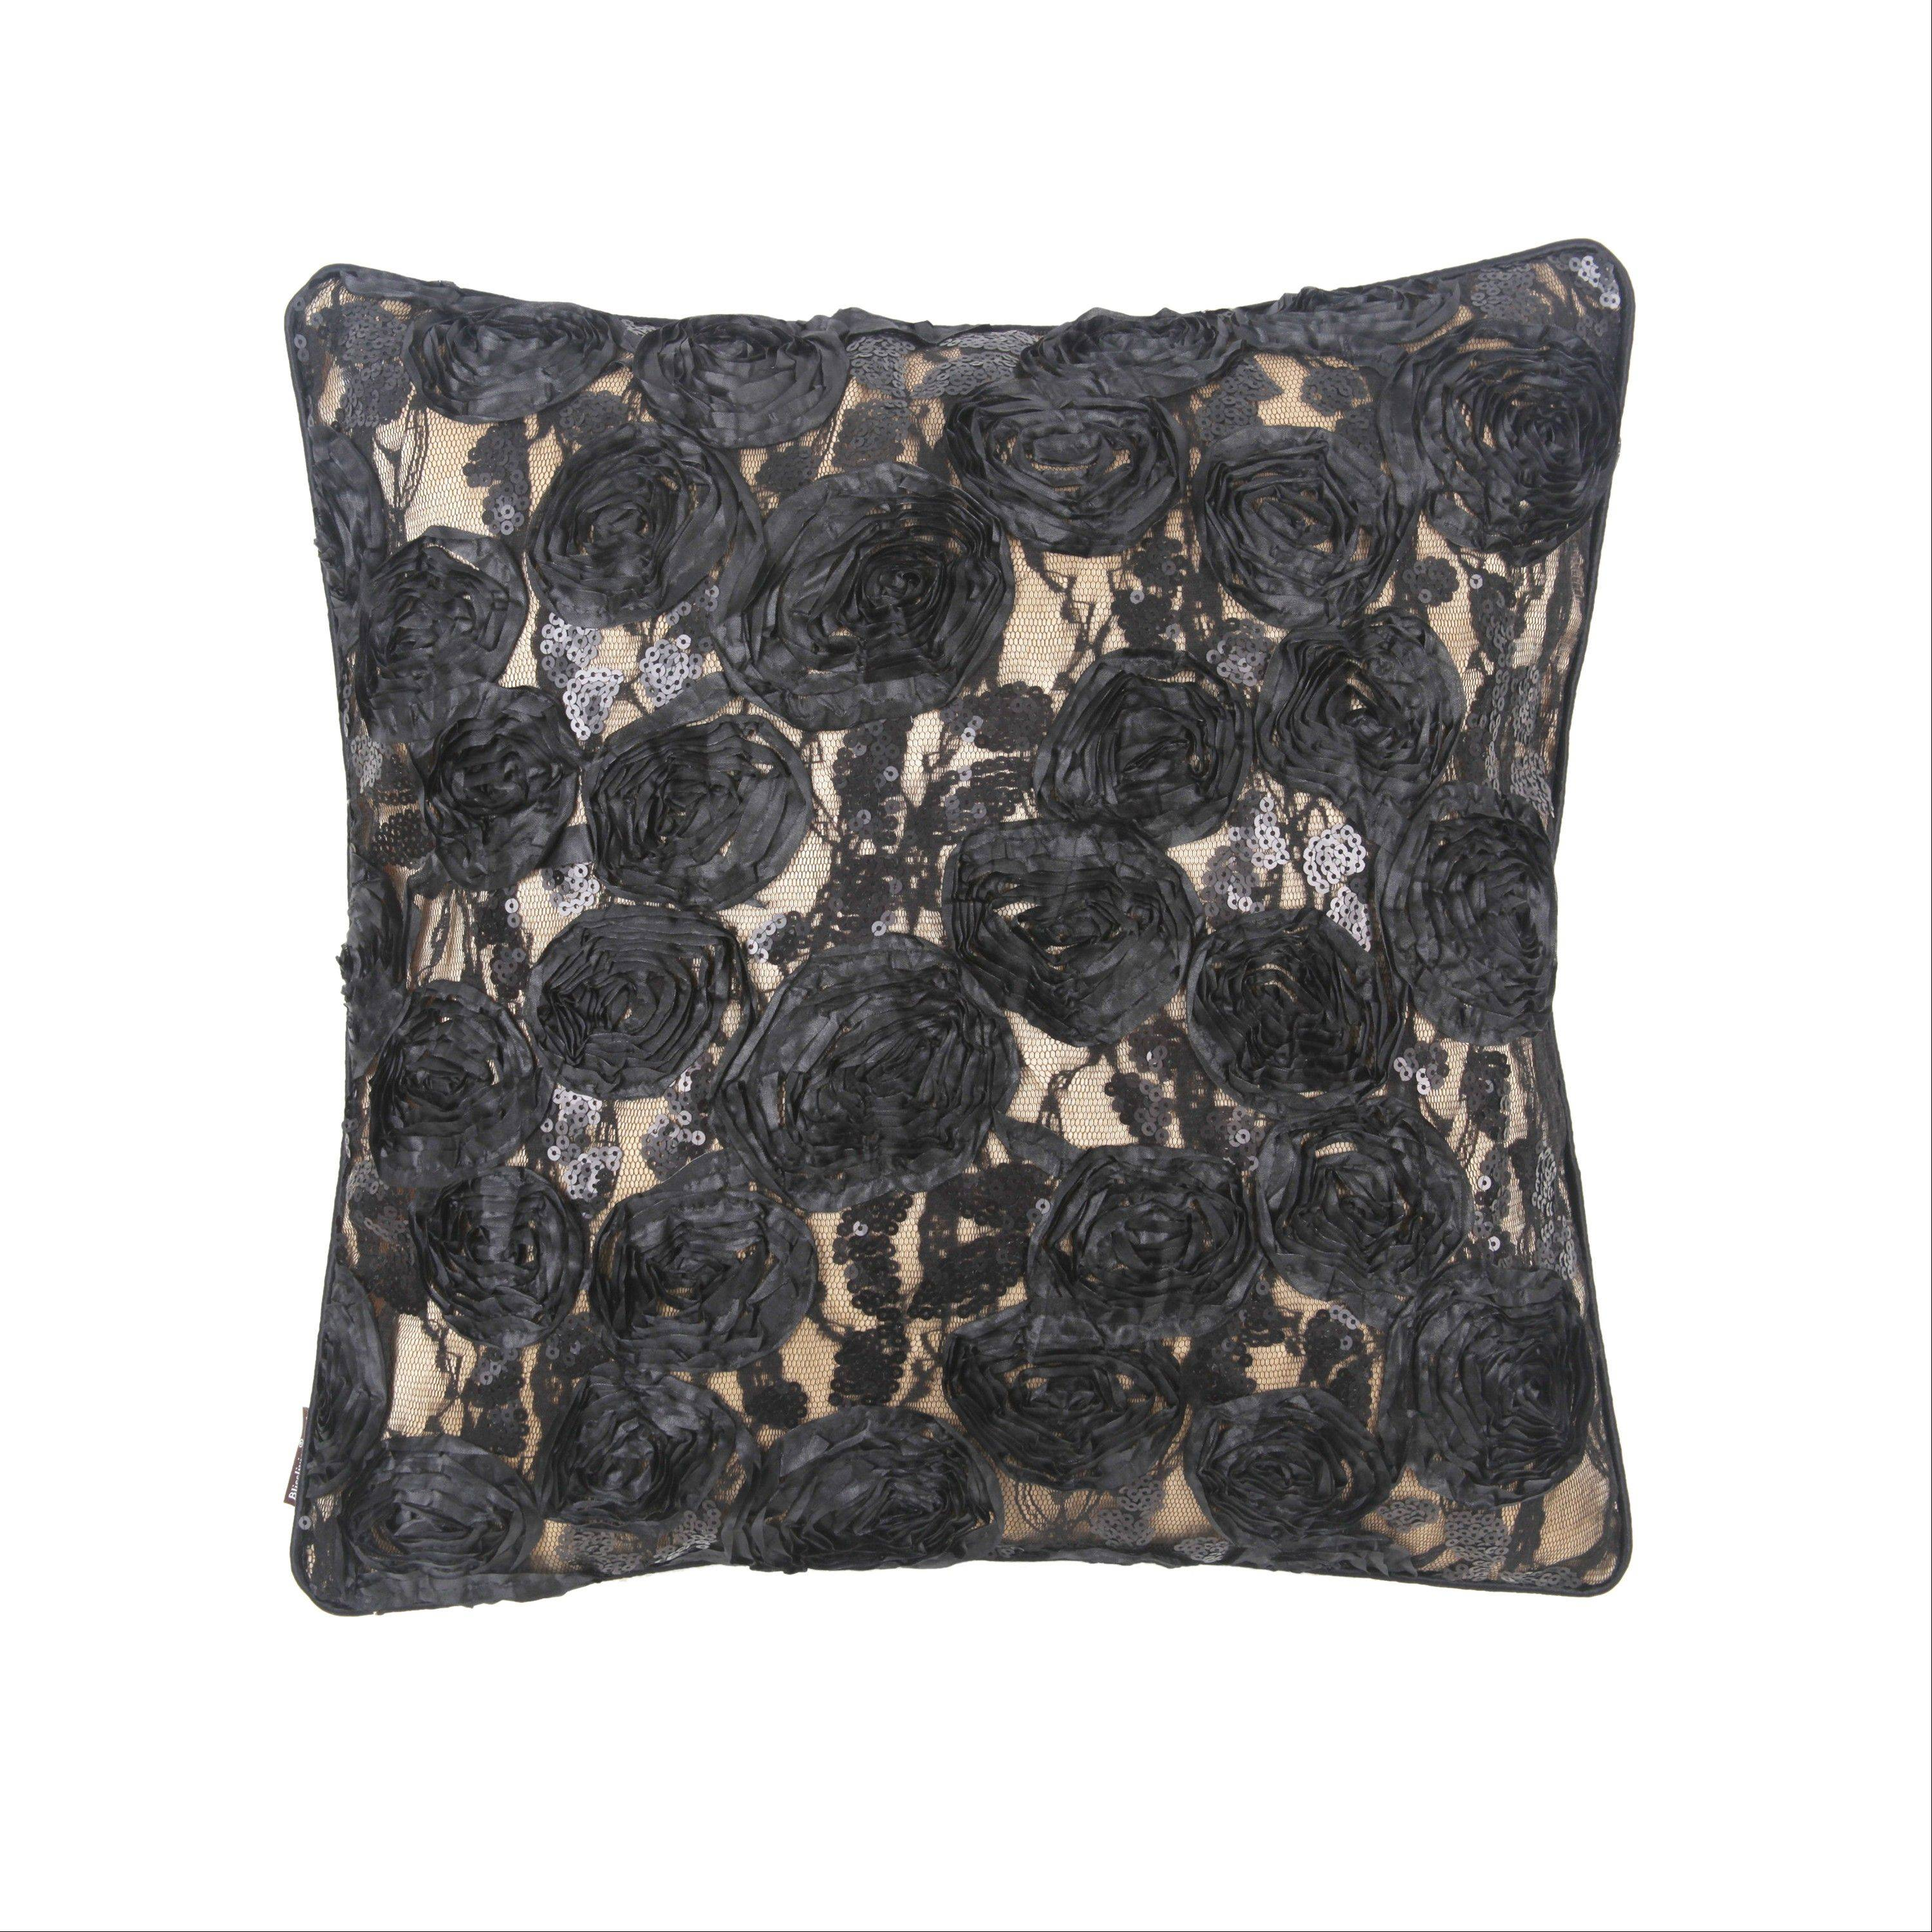 A saucy Sylvie lace pillow adds a touch of French savoir faire. Parisian style is a big fall trend.